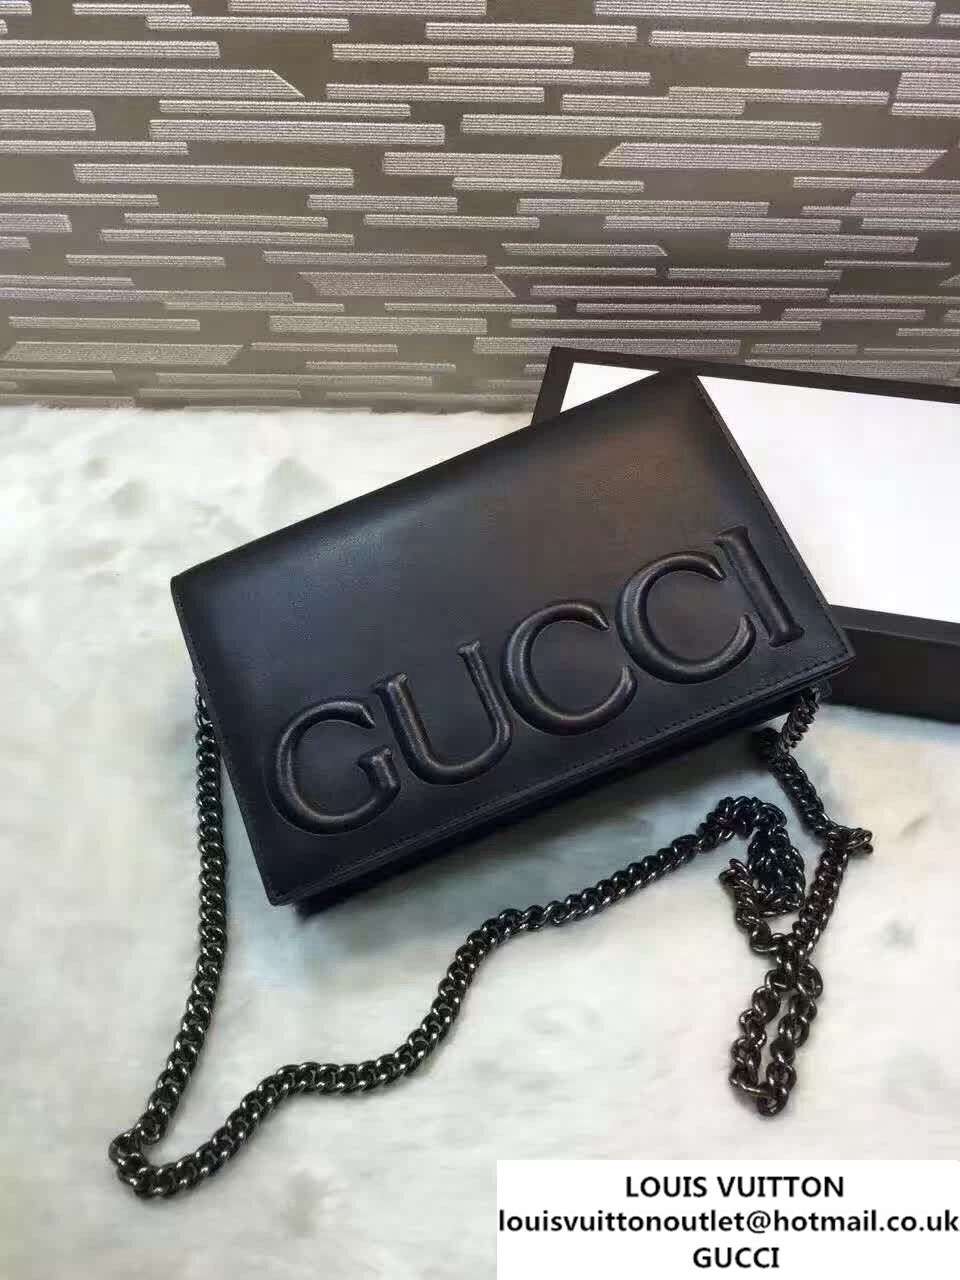 955c97f4db16 Gucci XL Leather Mini Chain Shoulder Bag 421850 Black 2016 | Purses ...